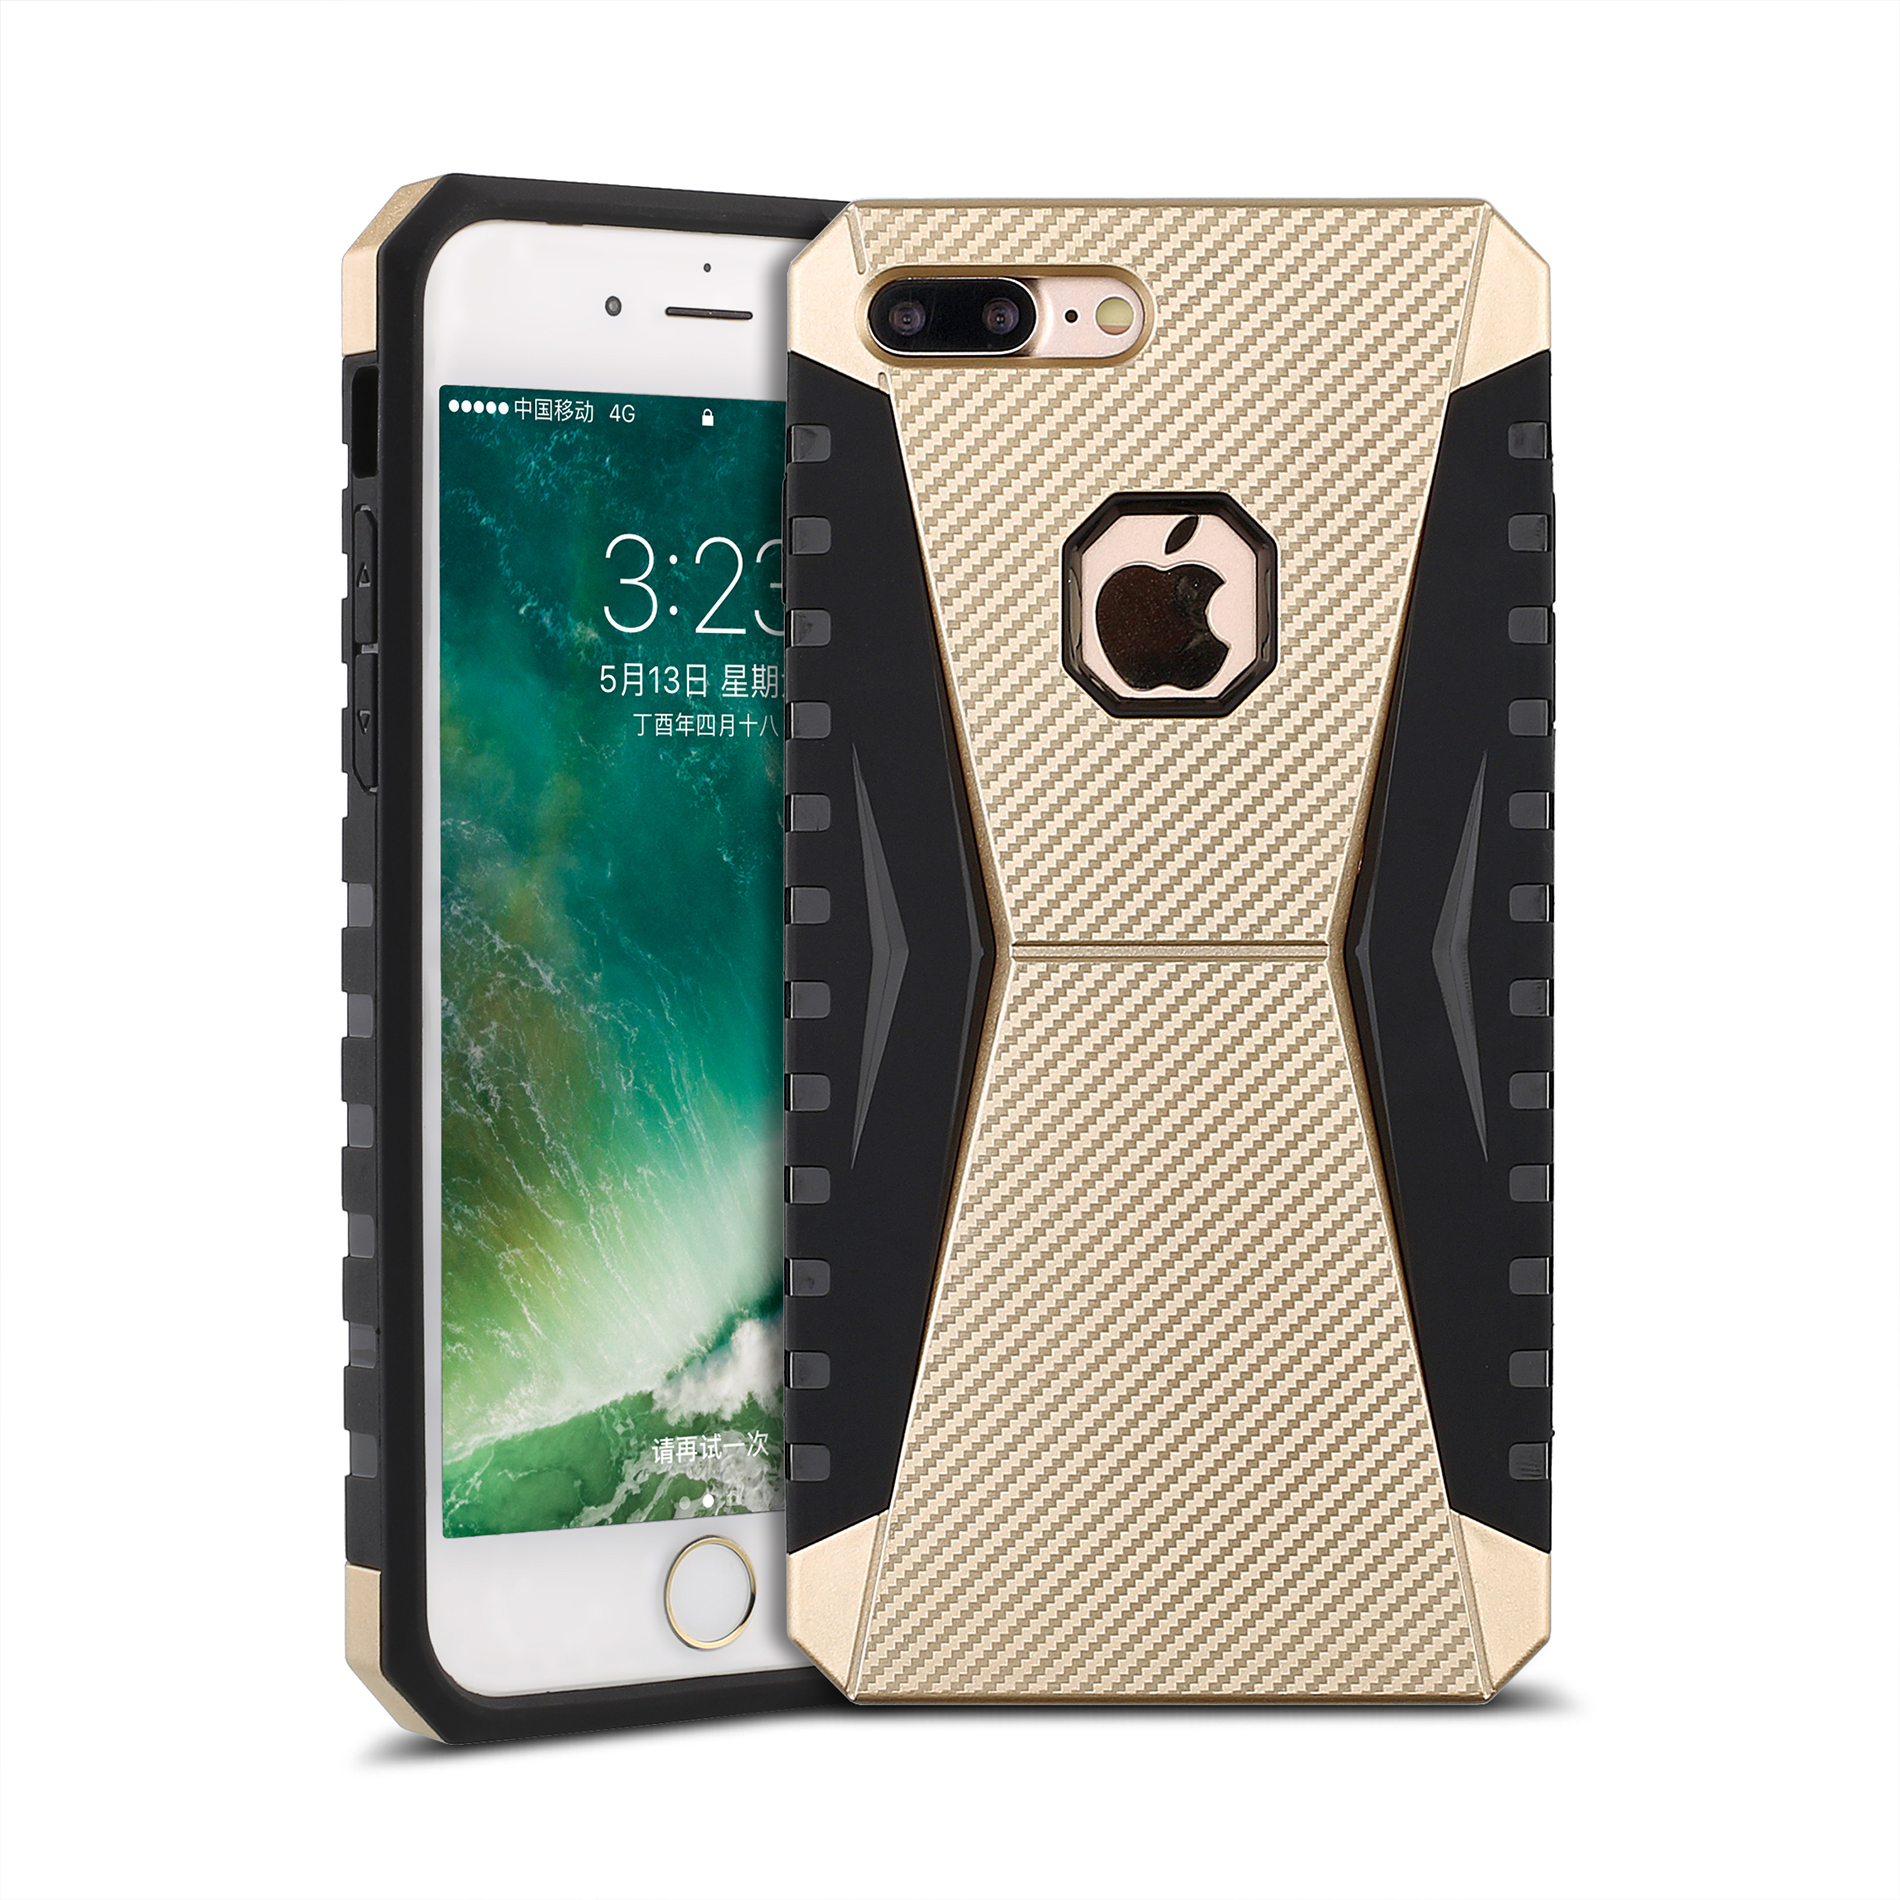 RockX Hybrid Armor Case for iPhone